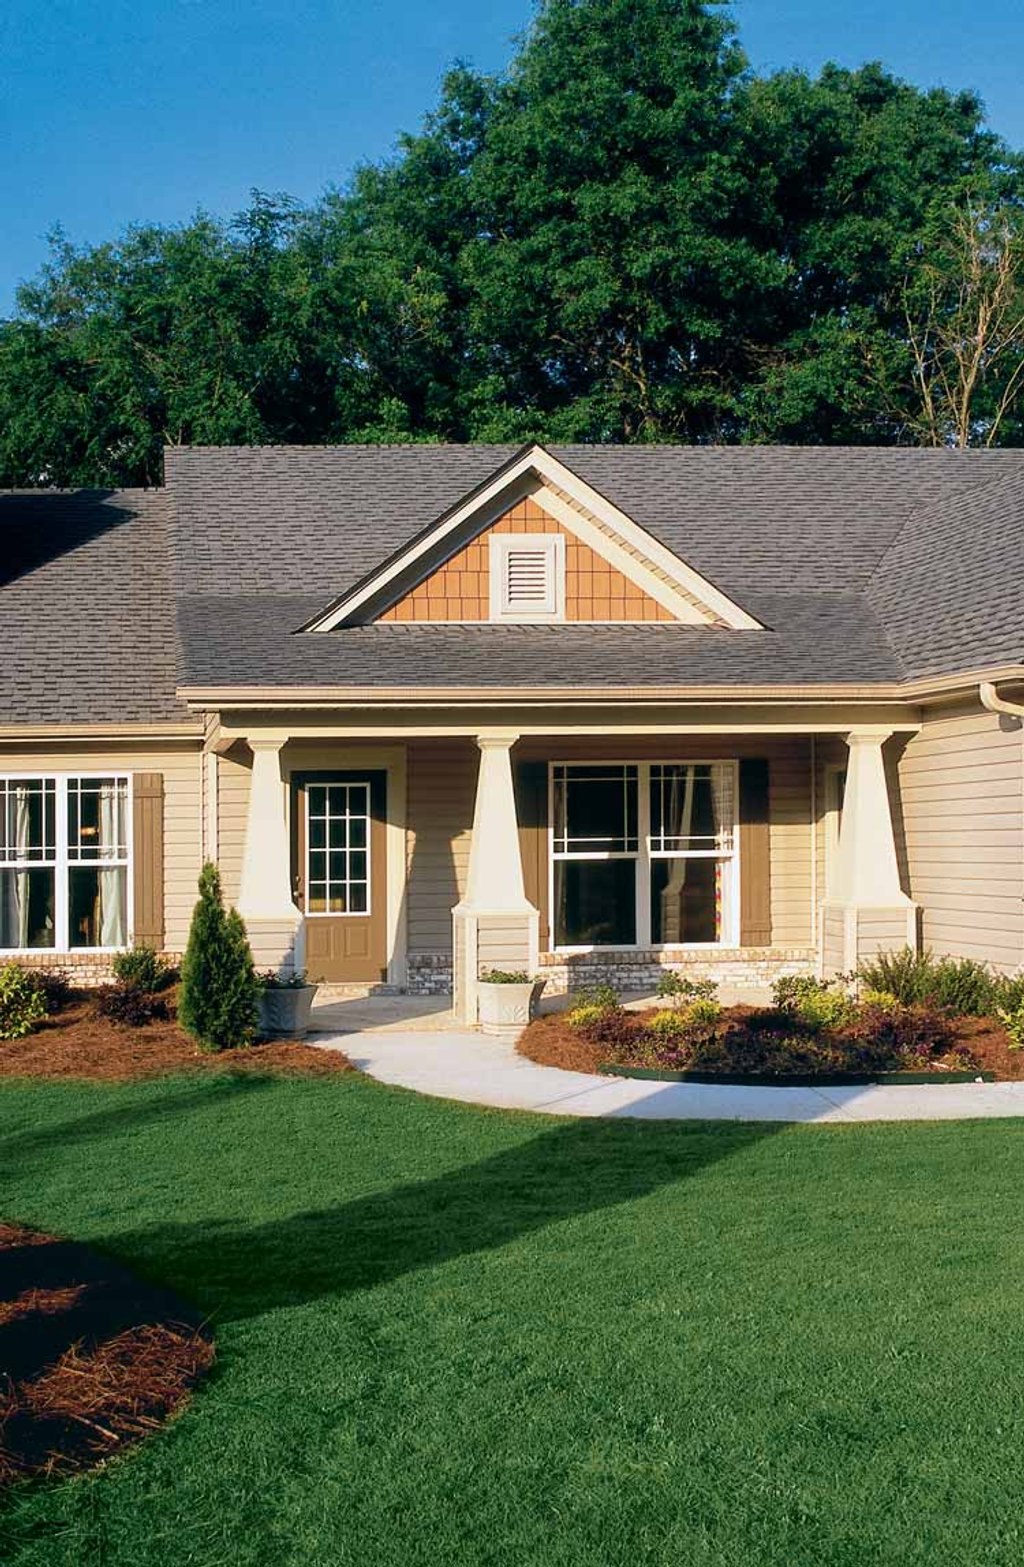 Country style house plan 3 beds 2 baths 1406 sq ft plan for Weinmaster house plans